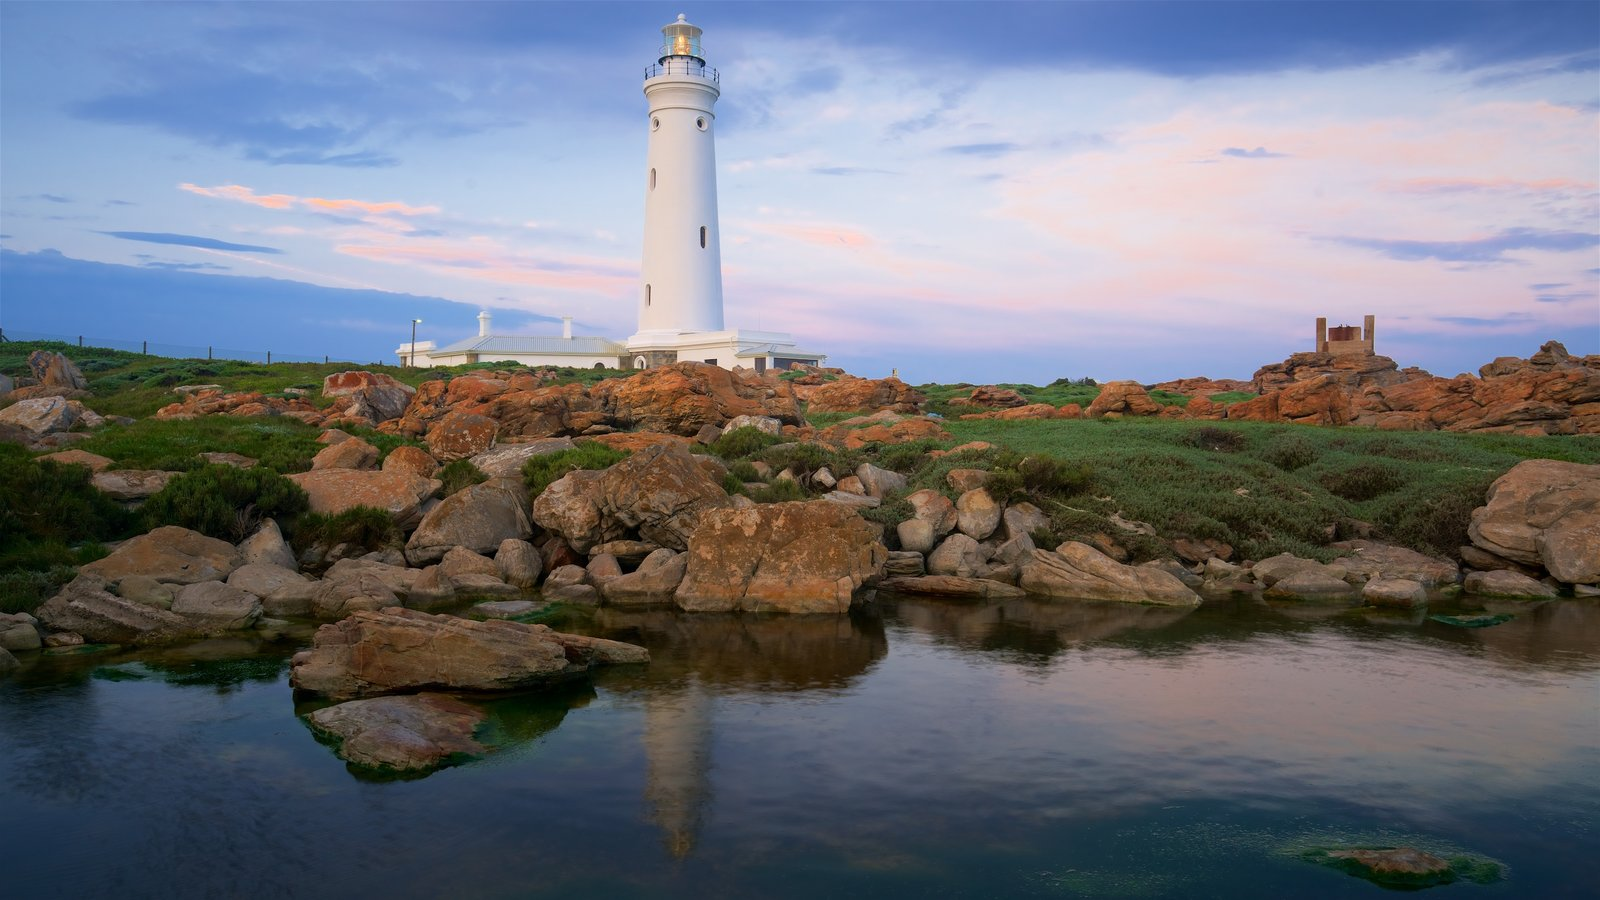 Seal Point Lighthouse featuring general coastal views, a lighthouse and rugged coastline